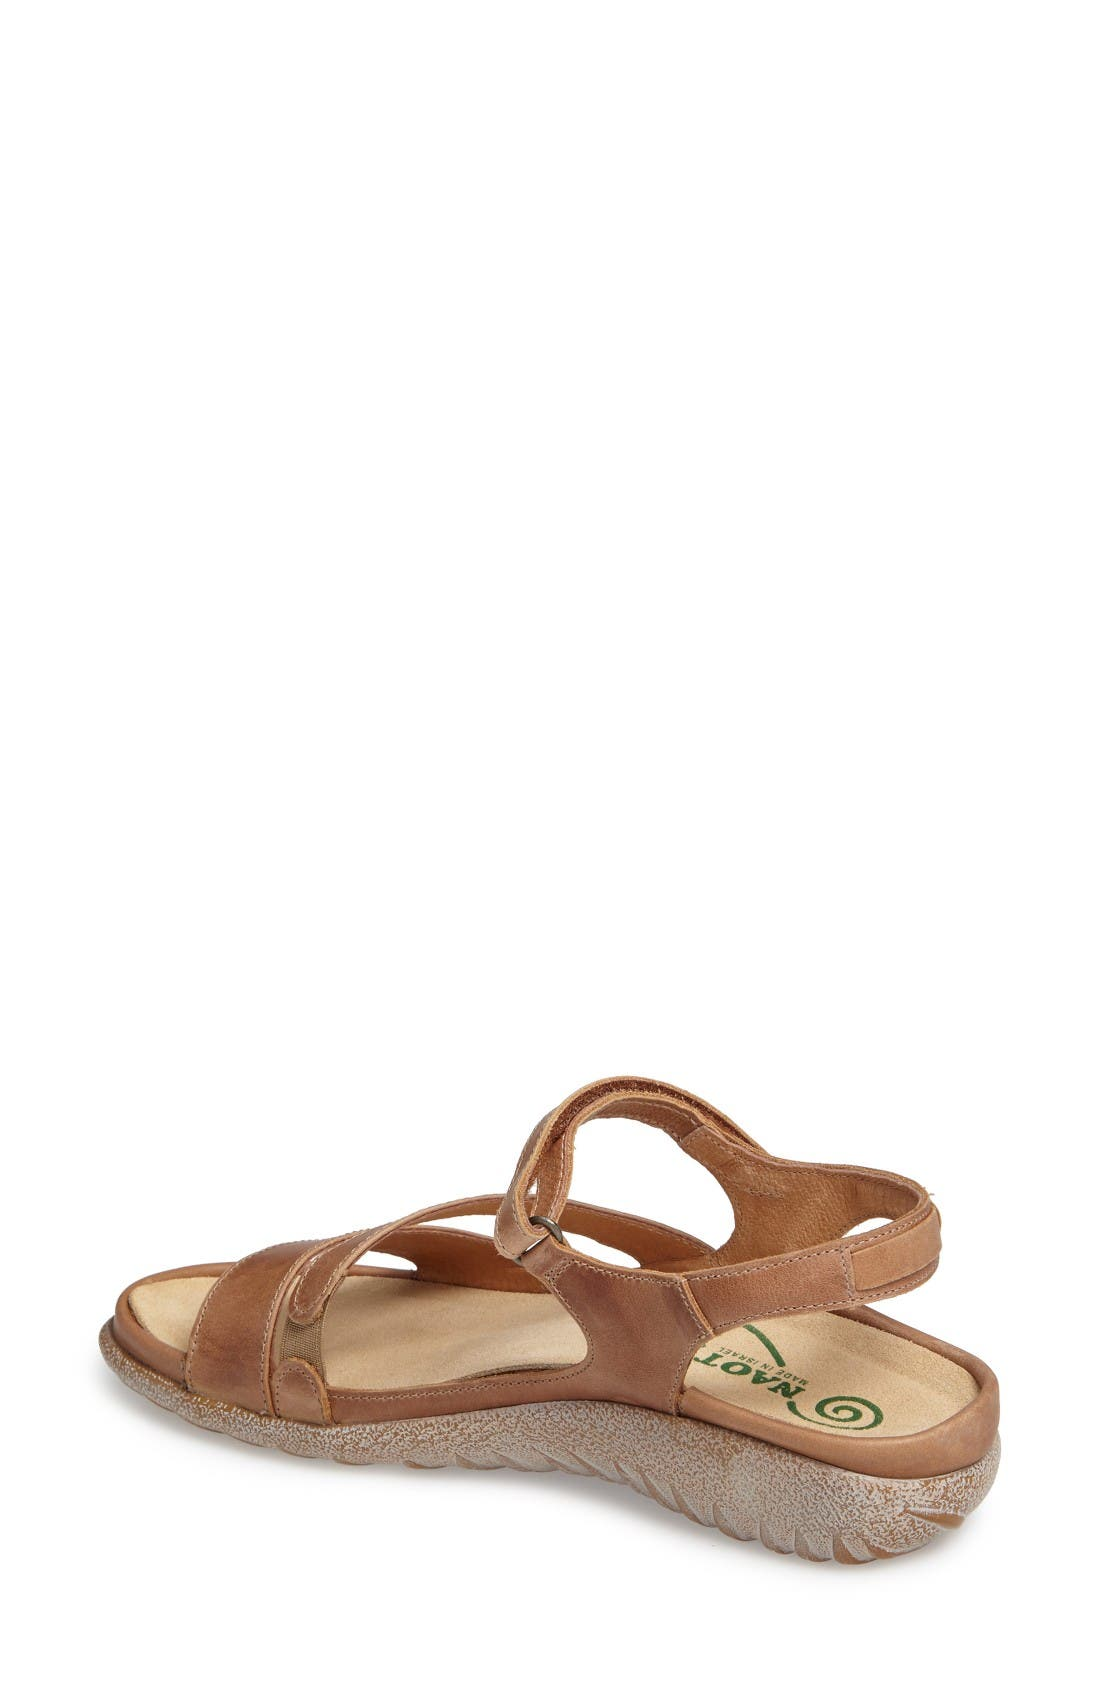 'Etera' Sandal,                             Alternate thumbnail 2, color,                             Brown Leather